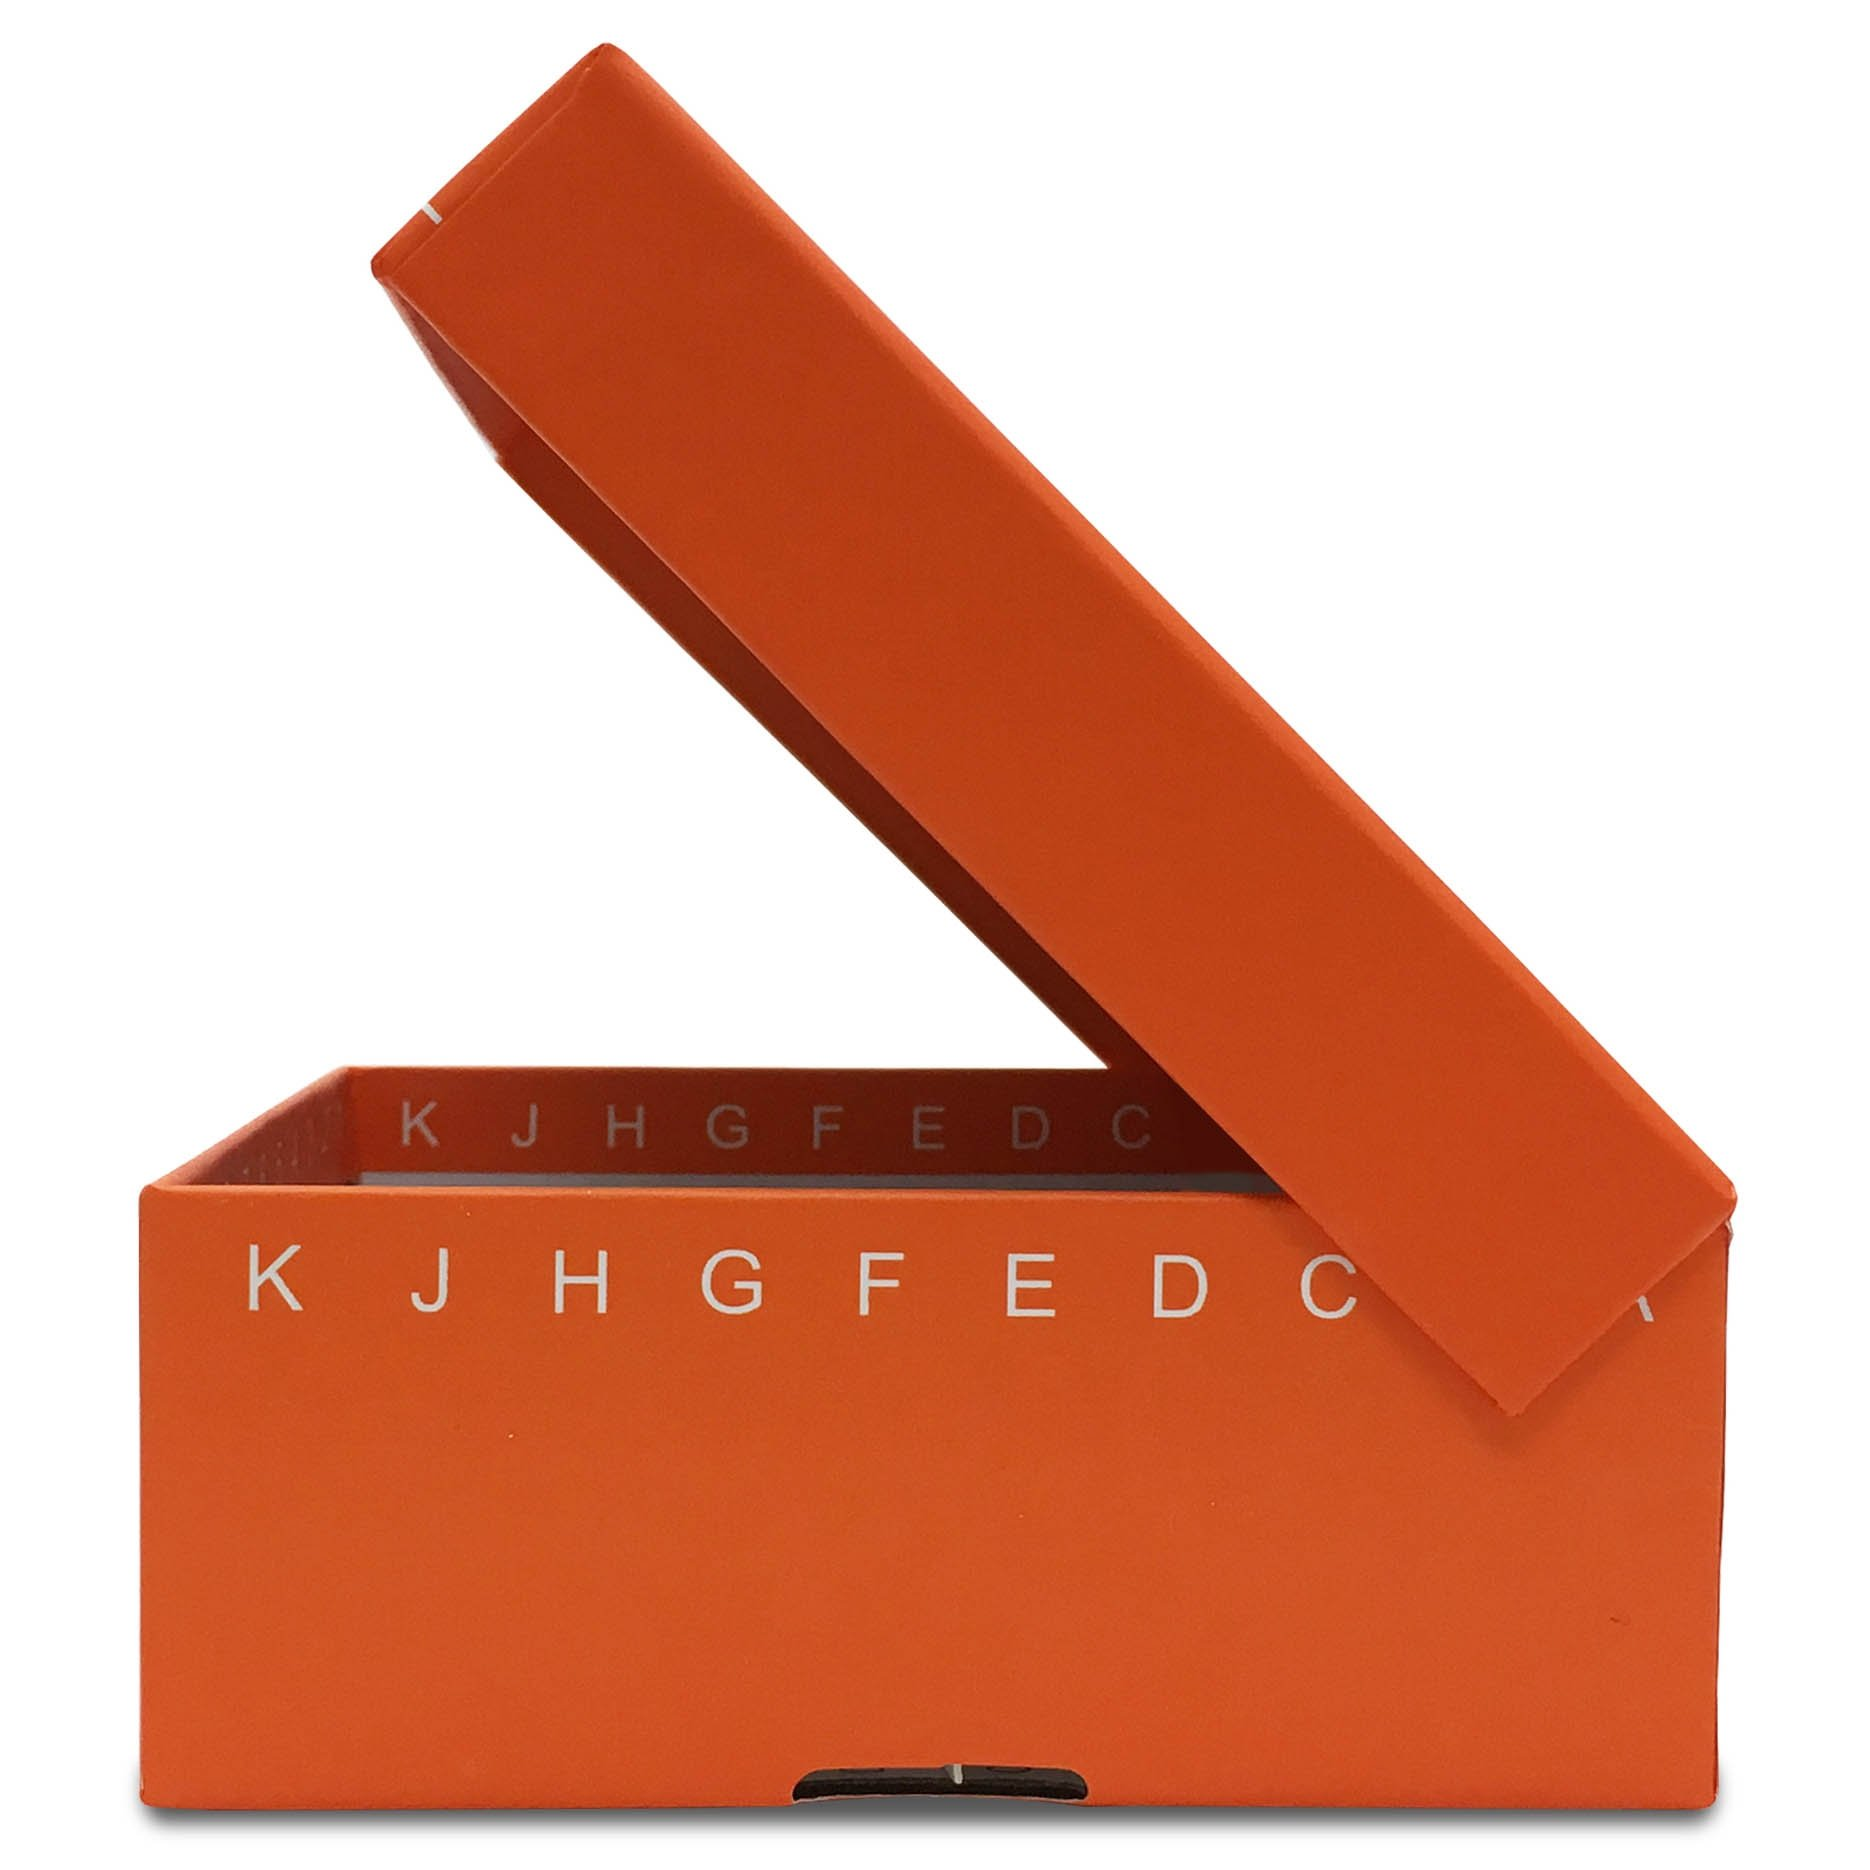 FlipTop Cardboard Freezer Box 100-Place with Attached Hinged Lid - Orange (Case of 50)